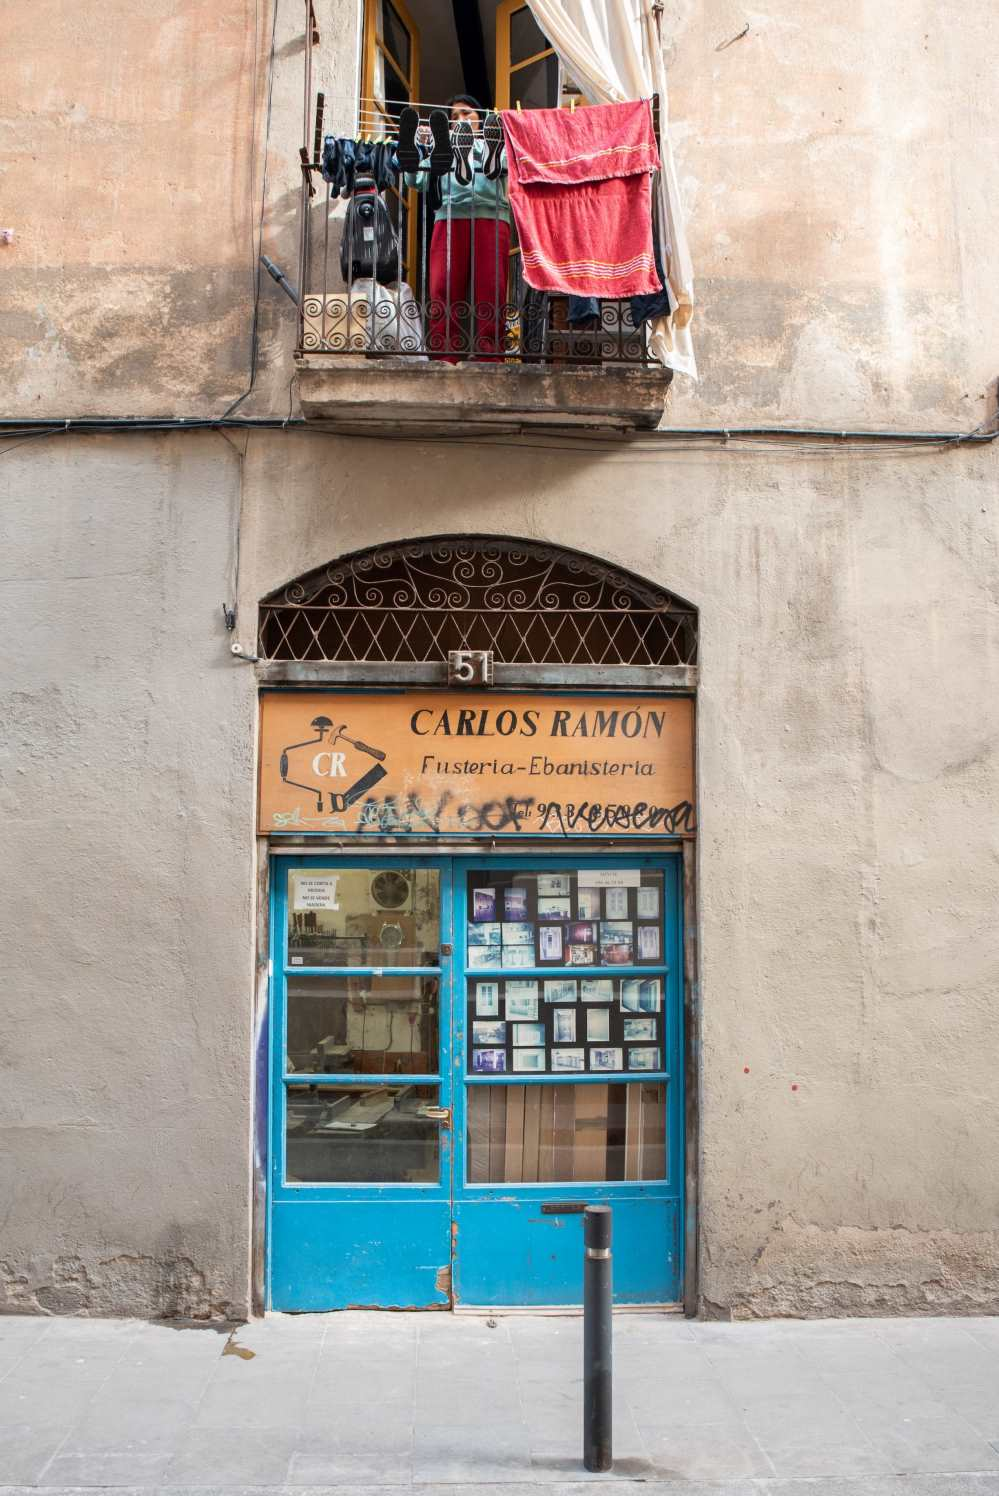 Street scene in Barcelona, a lady is hanging out washing on her balcony above a carpenter's workshop - Photo by Ben Holbrook